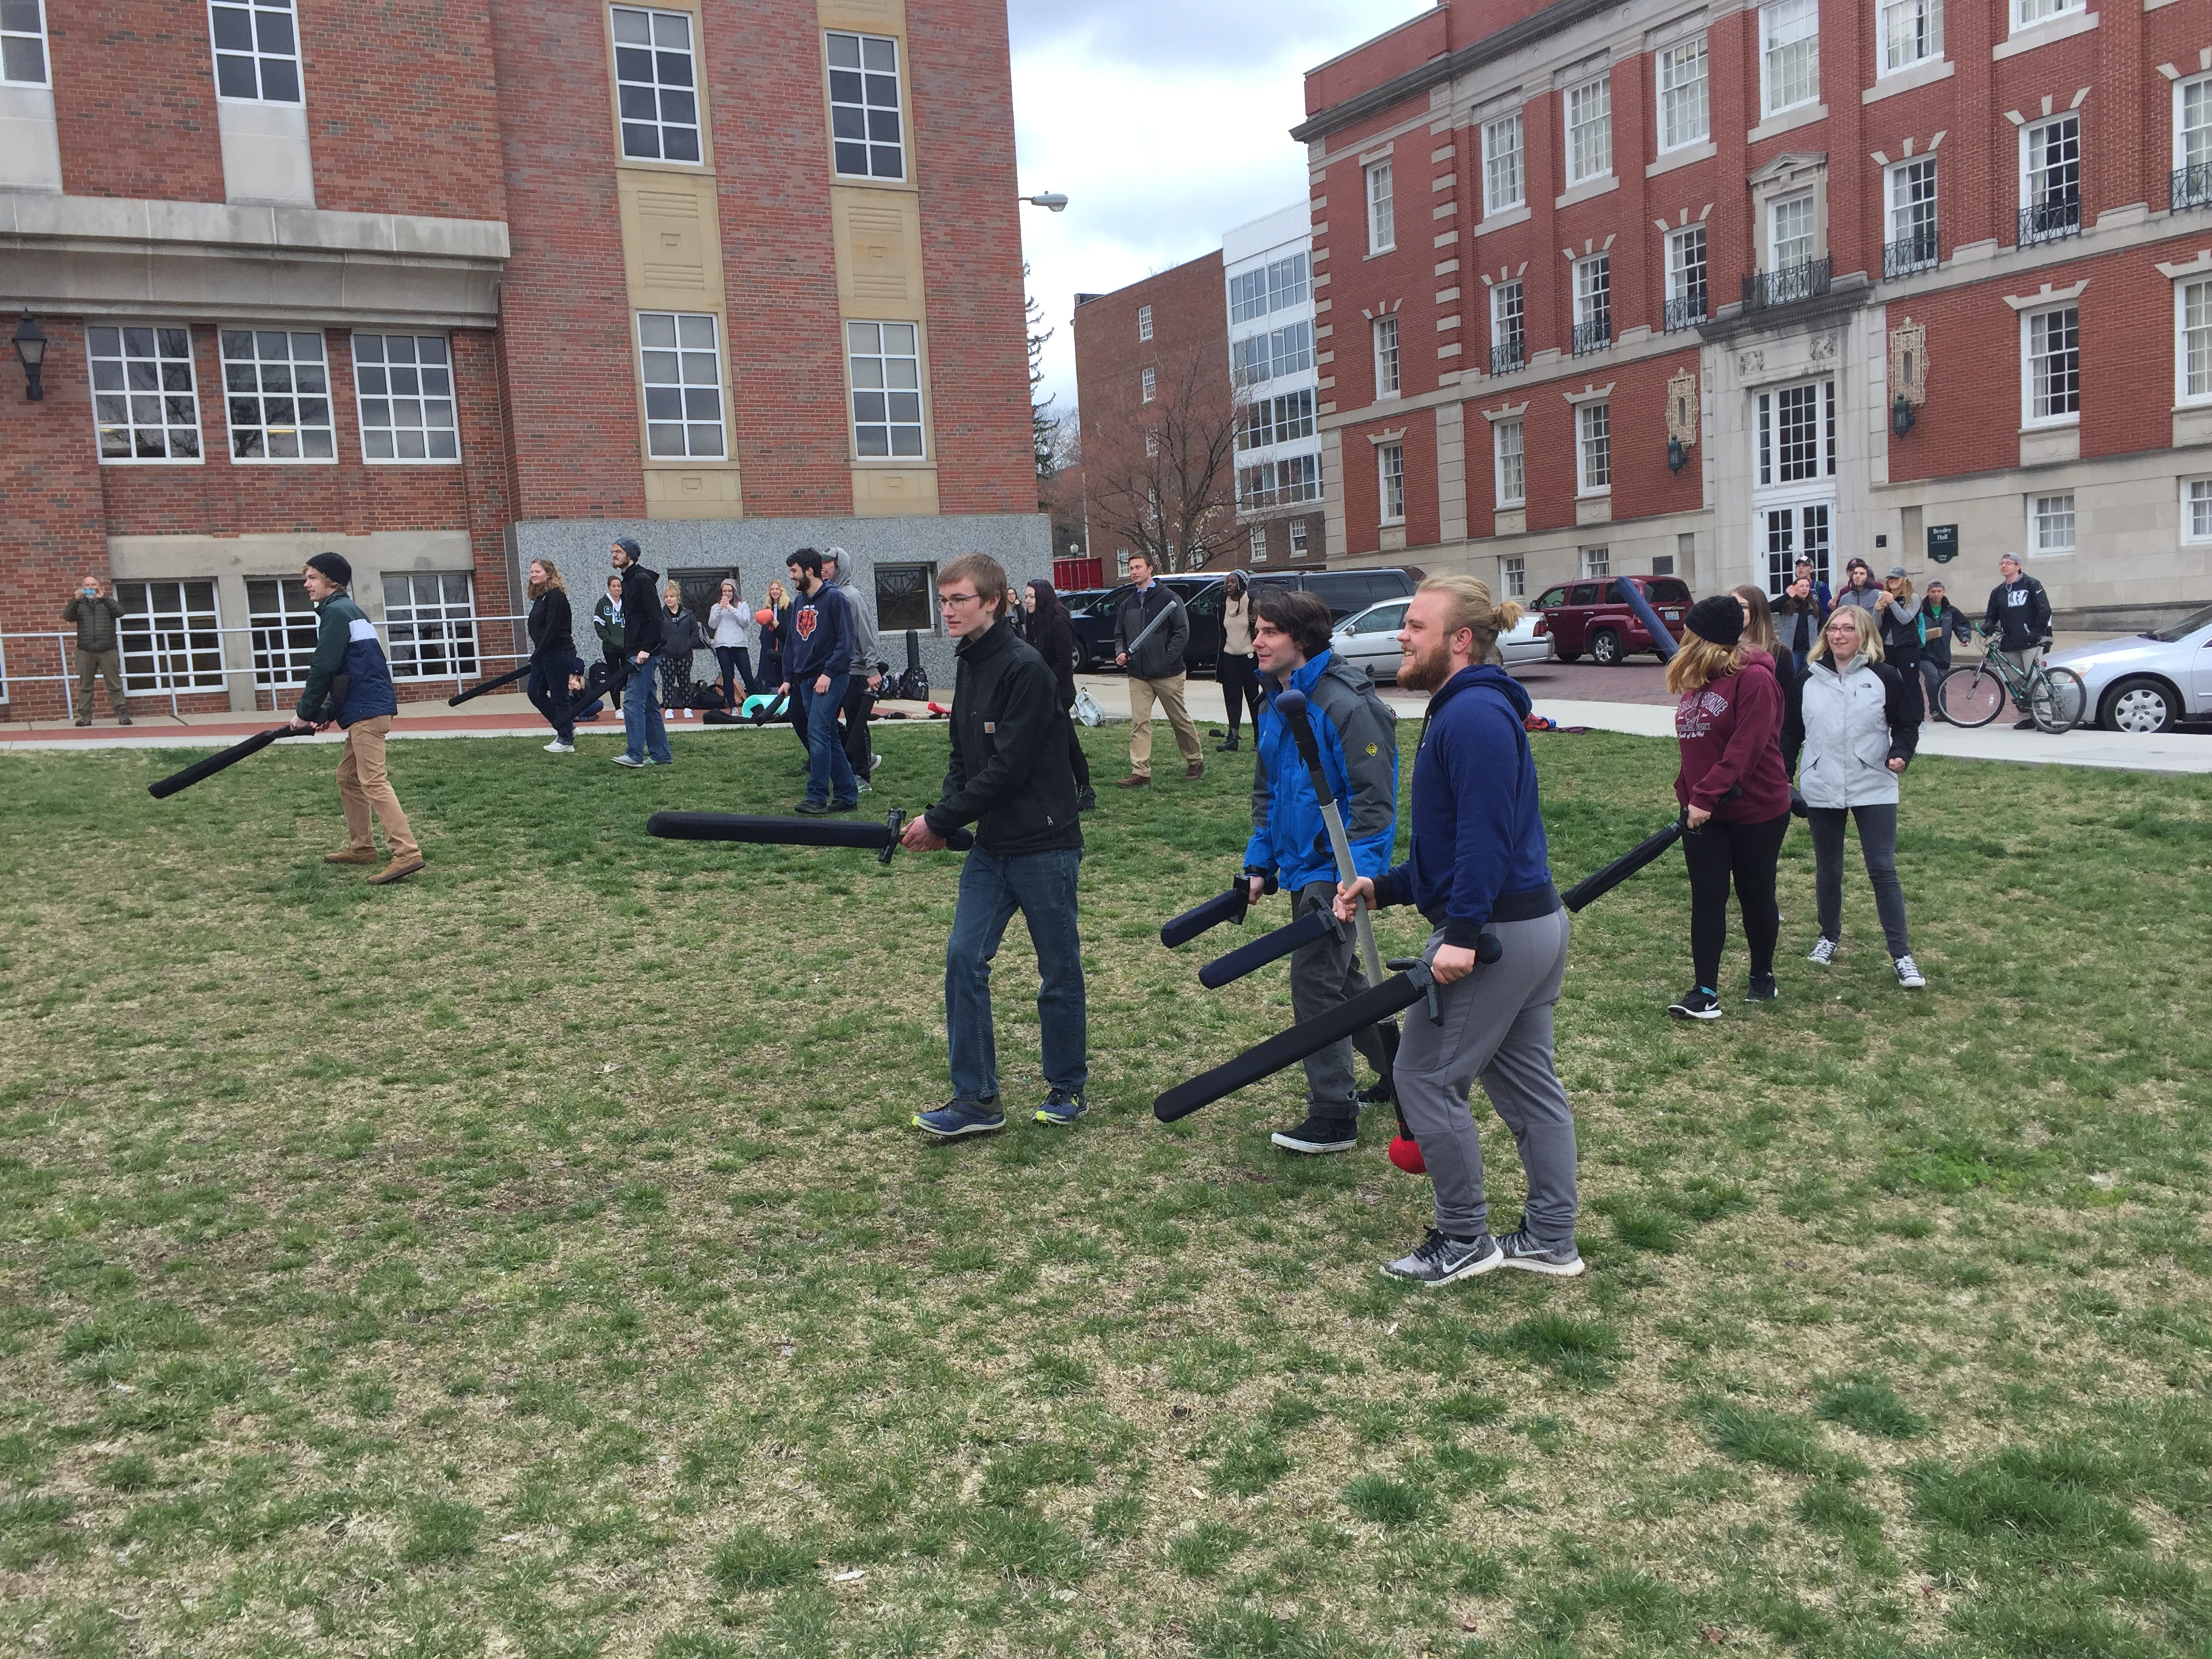 LARP demonstration in Dr. Kevin Uhalde's HIST 1222 course at Ohio University.